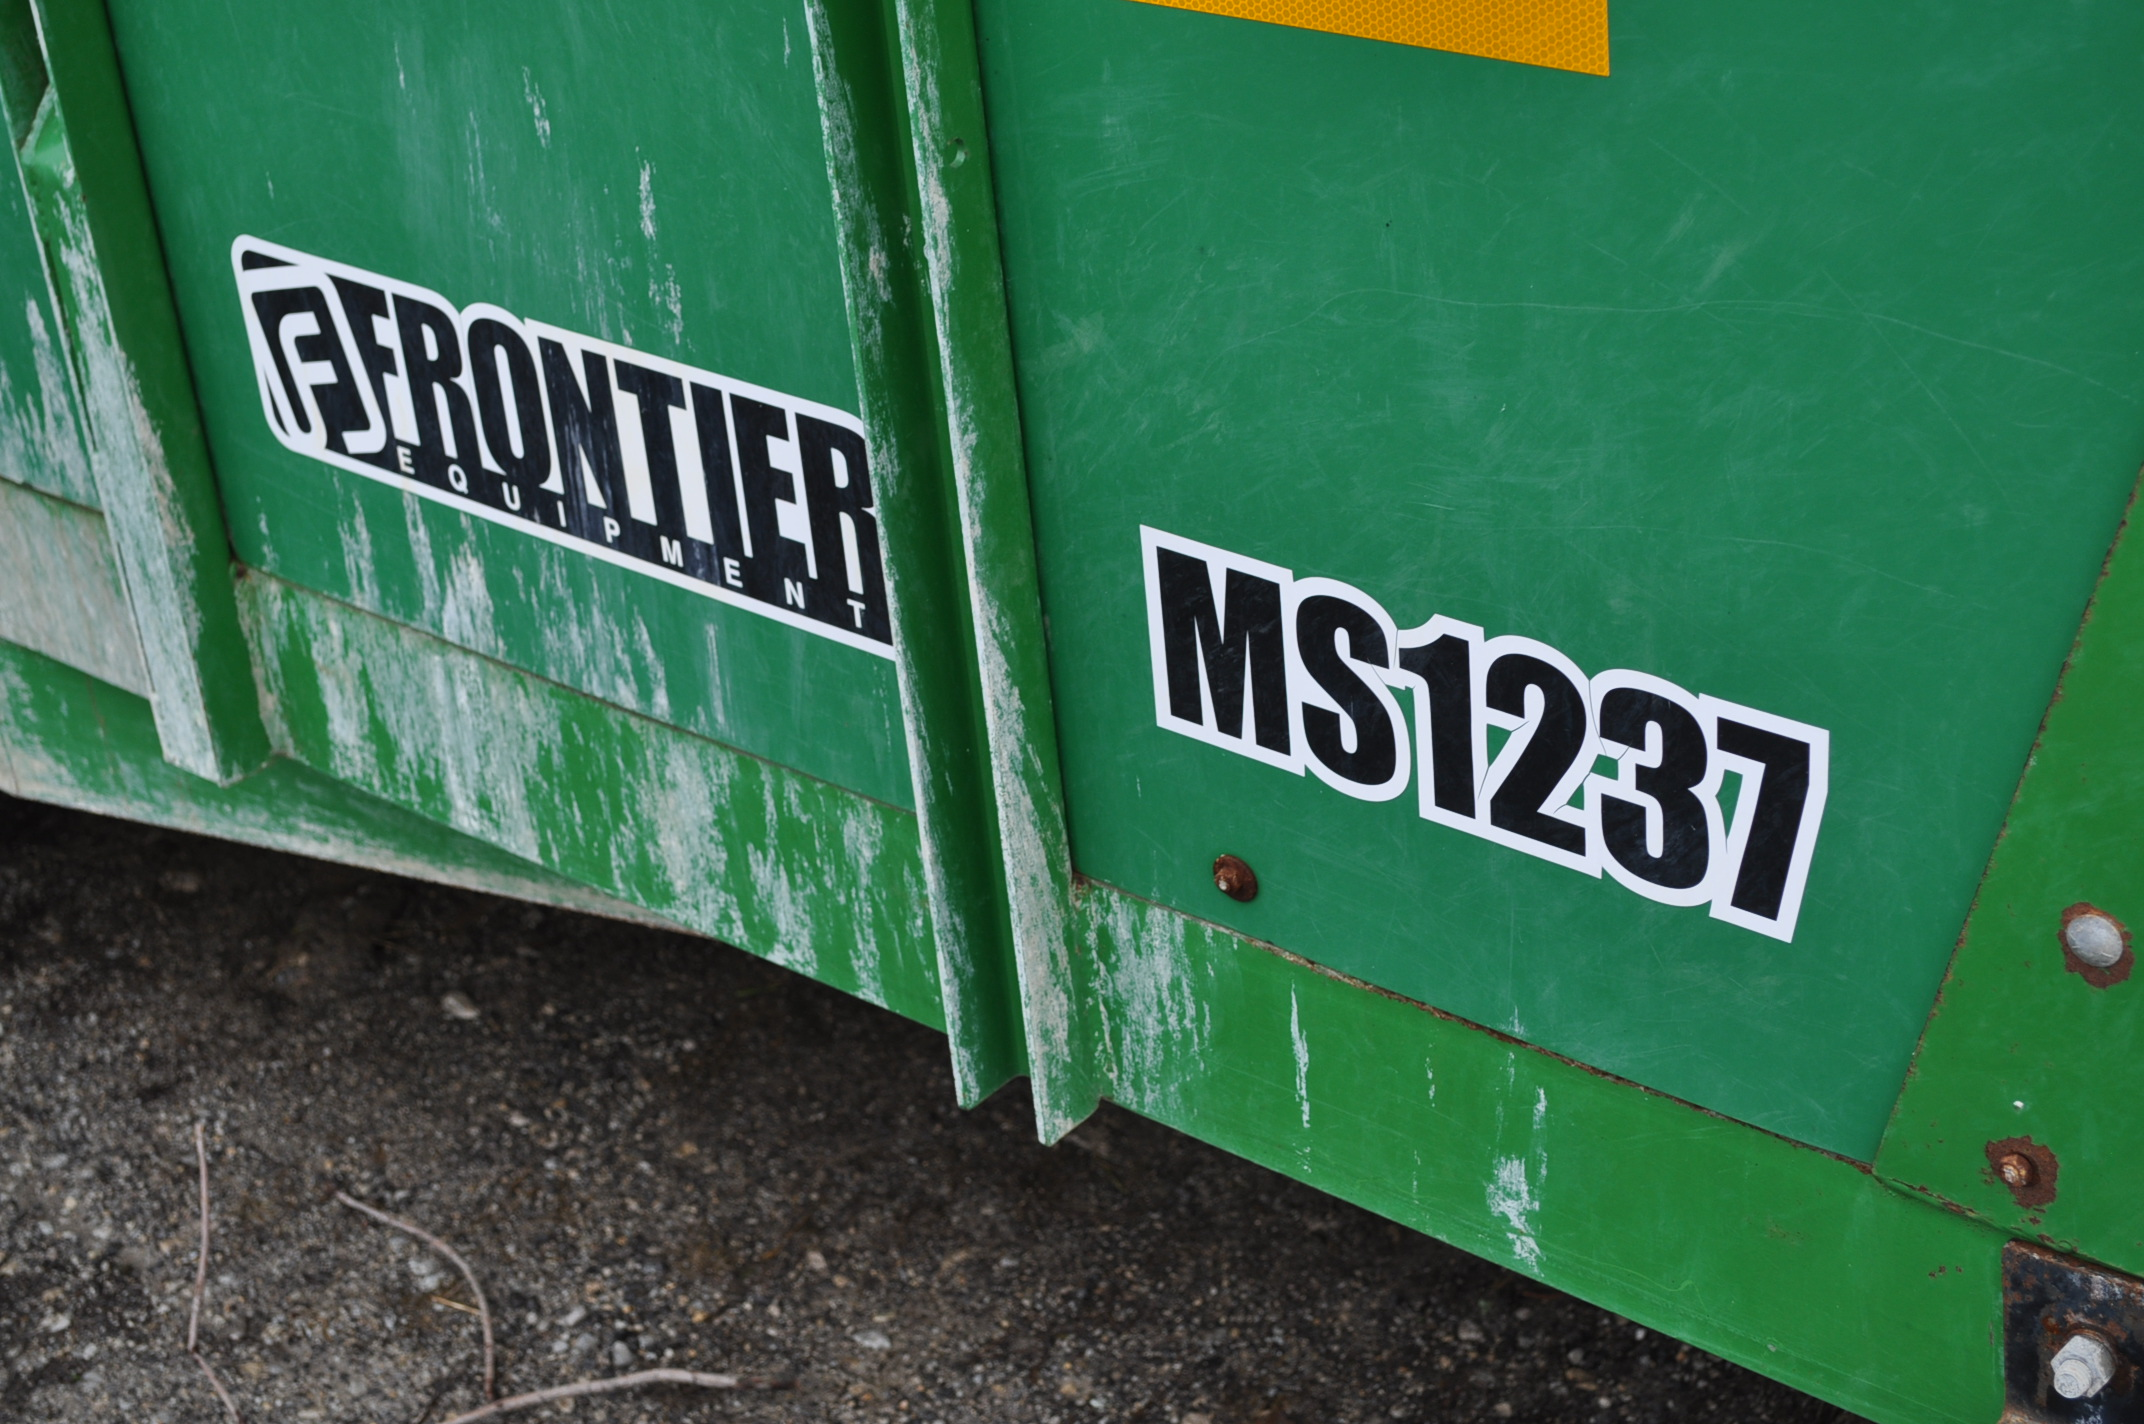 16' Frontier MS 1237 manure spreader, 540 pto, 16.5-16.1 tandem, slop gate, upper beater, has only - Image 5 of 13